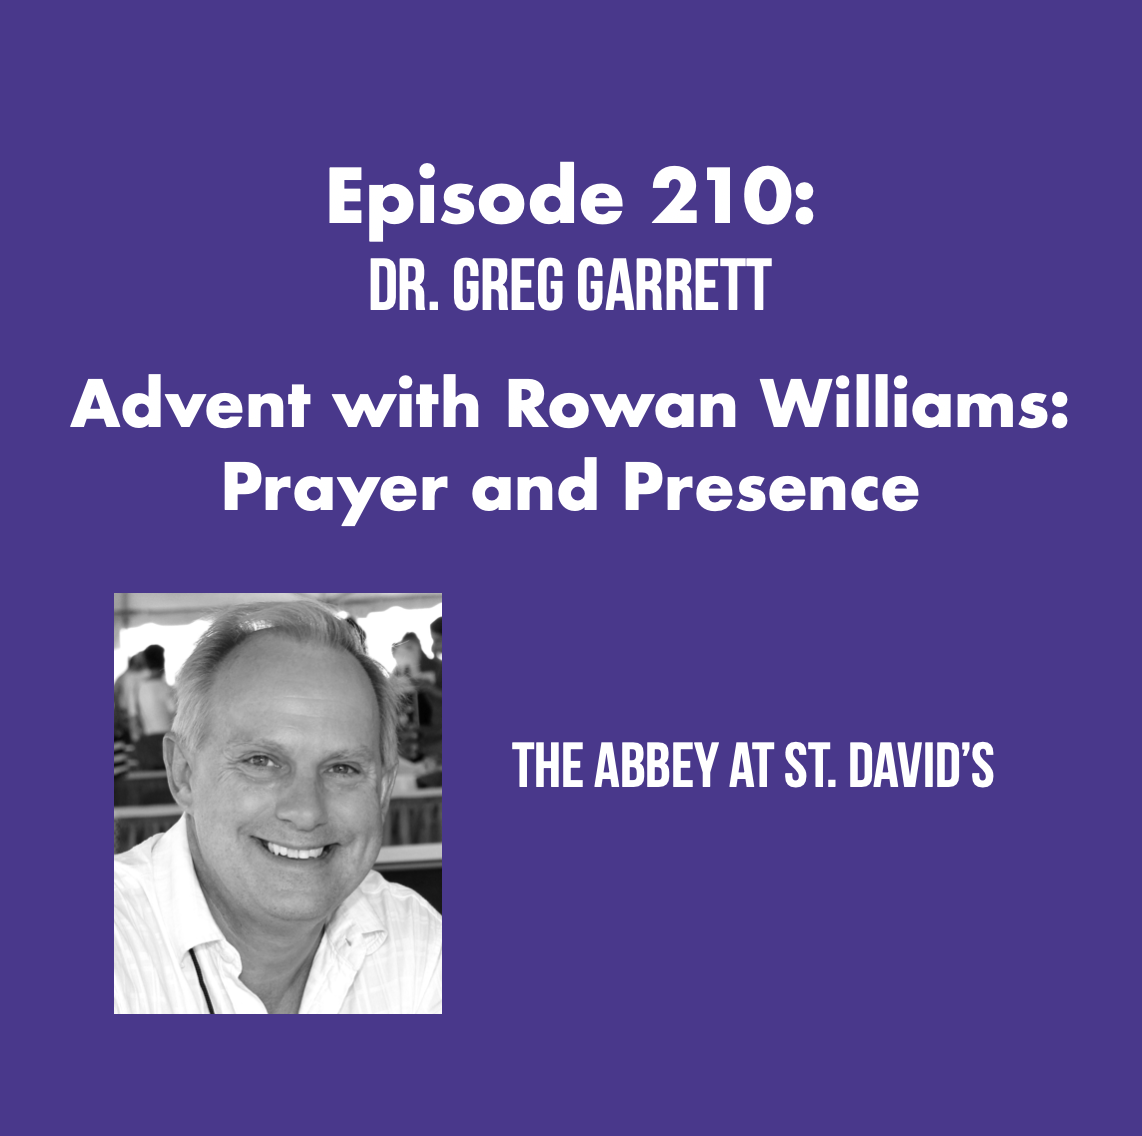 Episode 210: Advent with Rowan: Lessons on Prayer and Presence with Dr. Greg Garrett